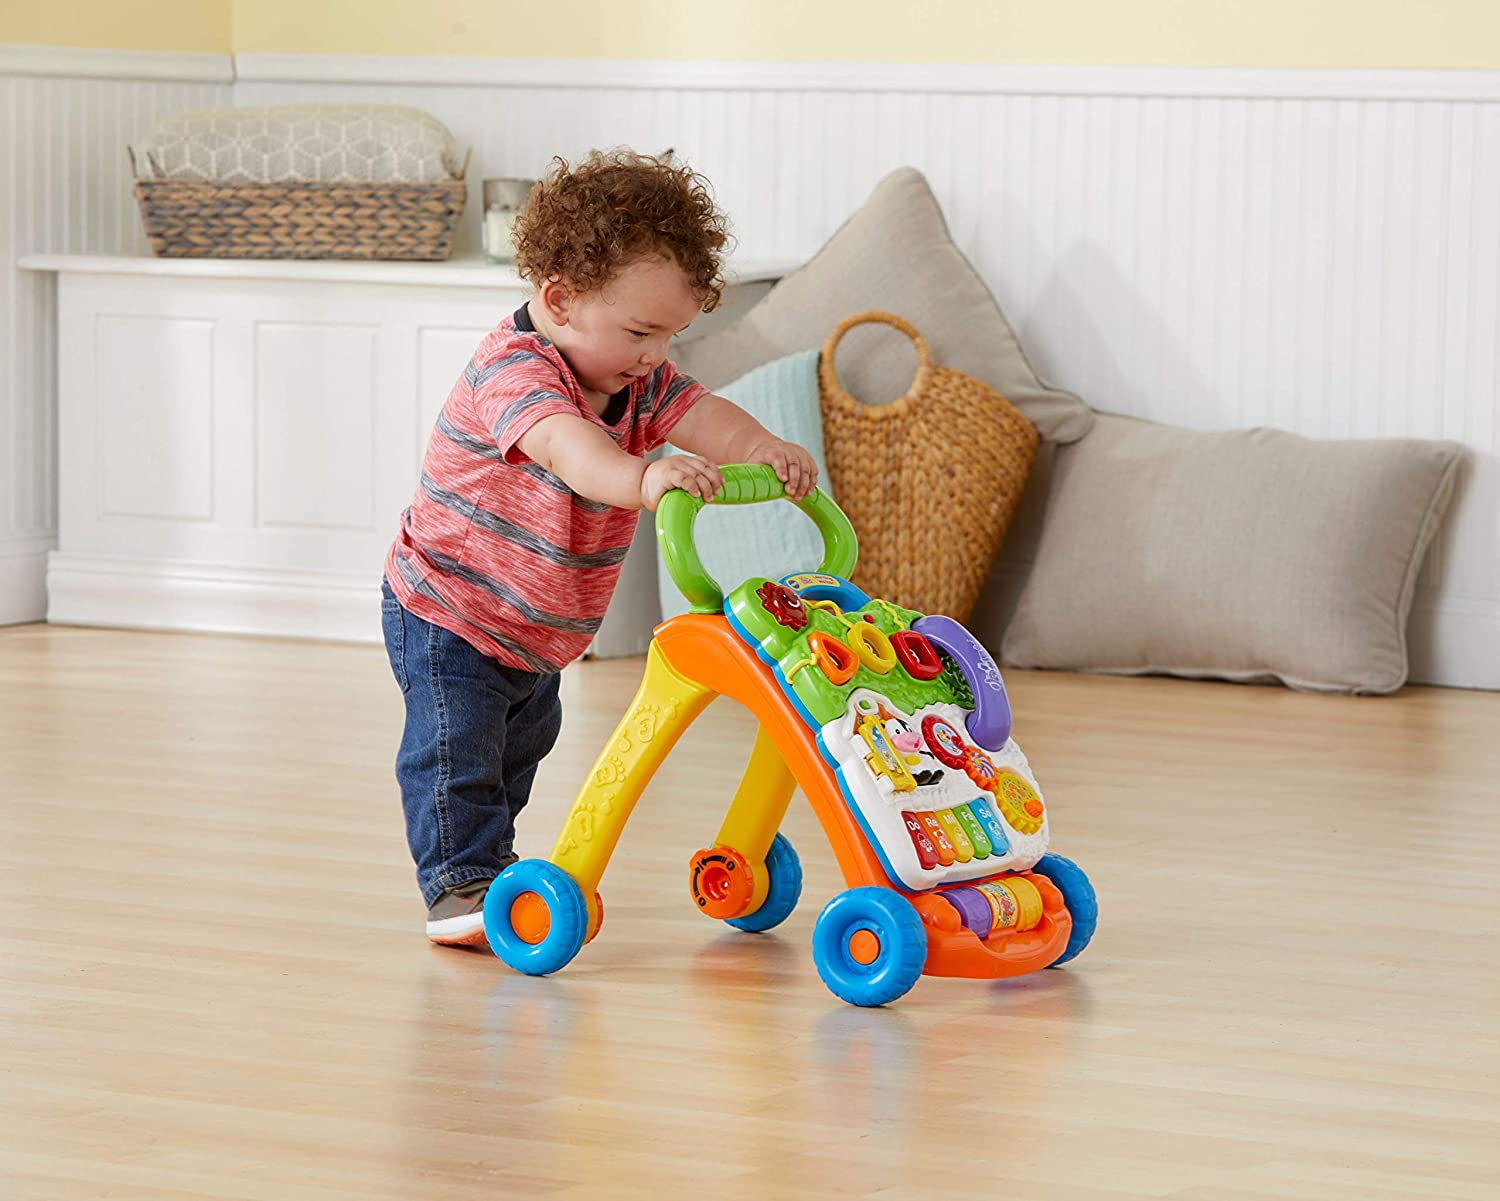 Frustration Free Packaging Lavender - VTech Sit-to-Stand Learning Walker Exclusive